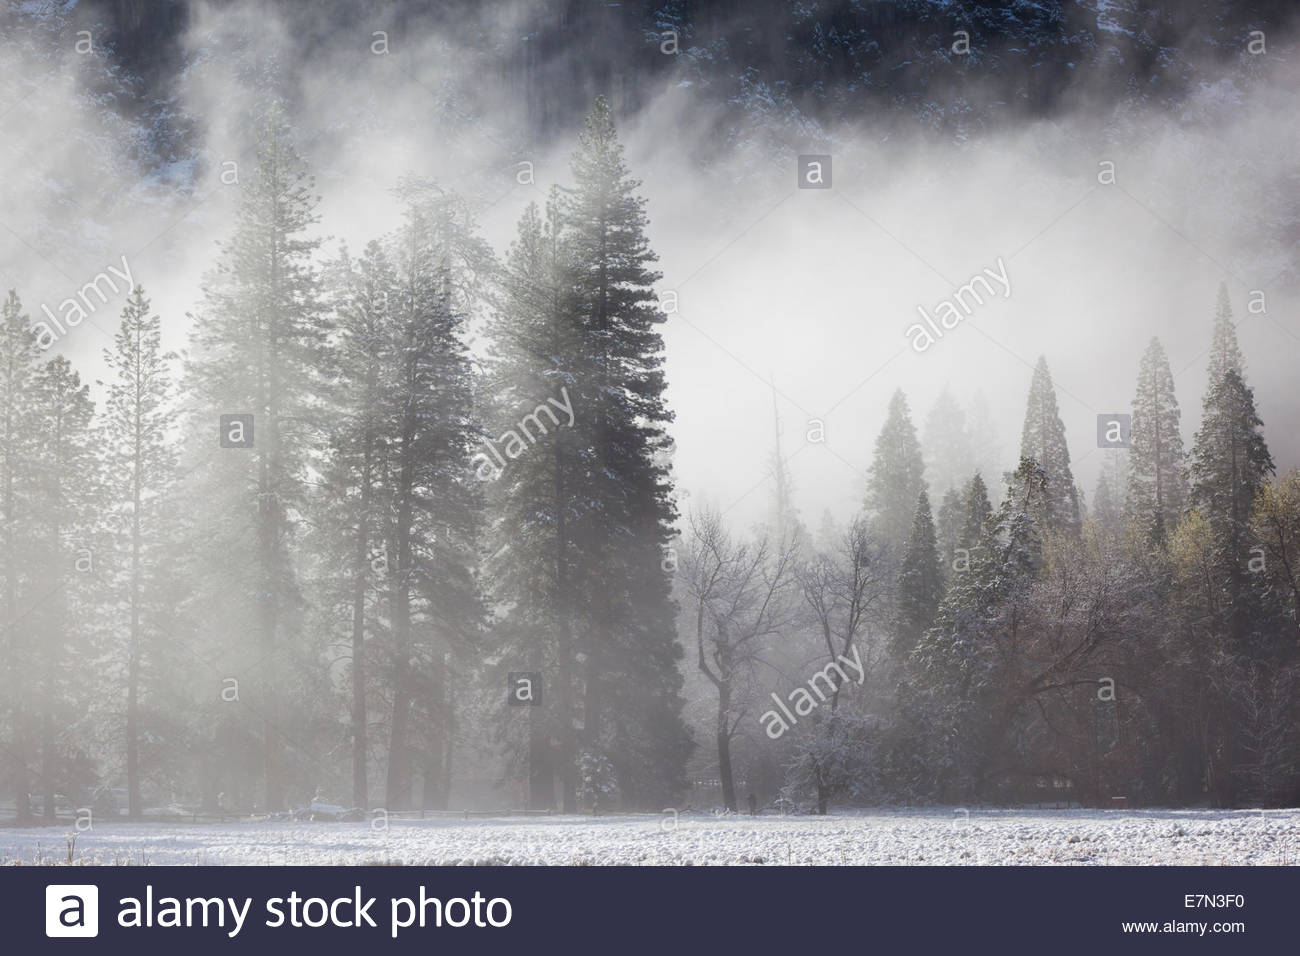 Foggy Spring Morning After Snowstorm in Cook's Meadow, Yosemite National Park, California - Stock Image